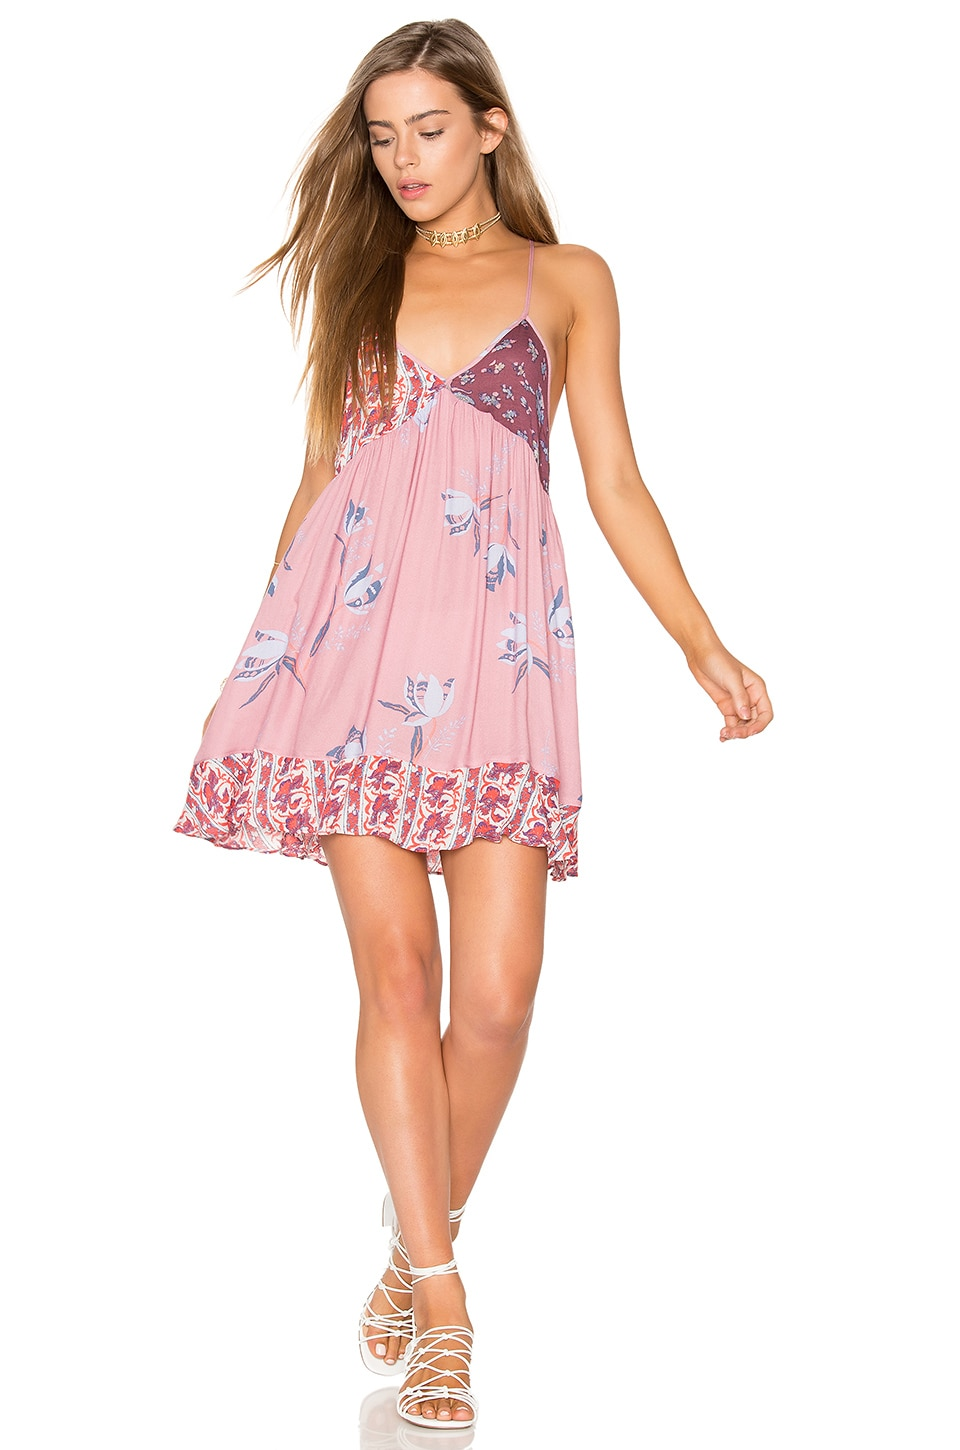 All Mixed Up Slip by Free People